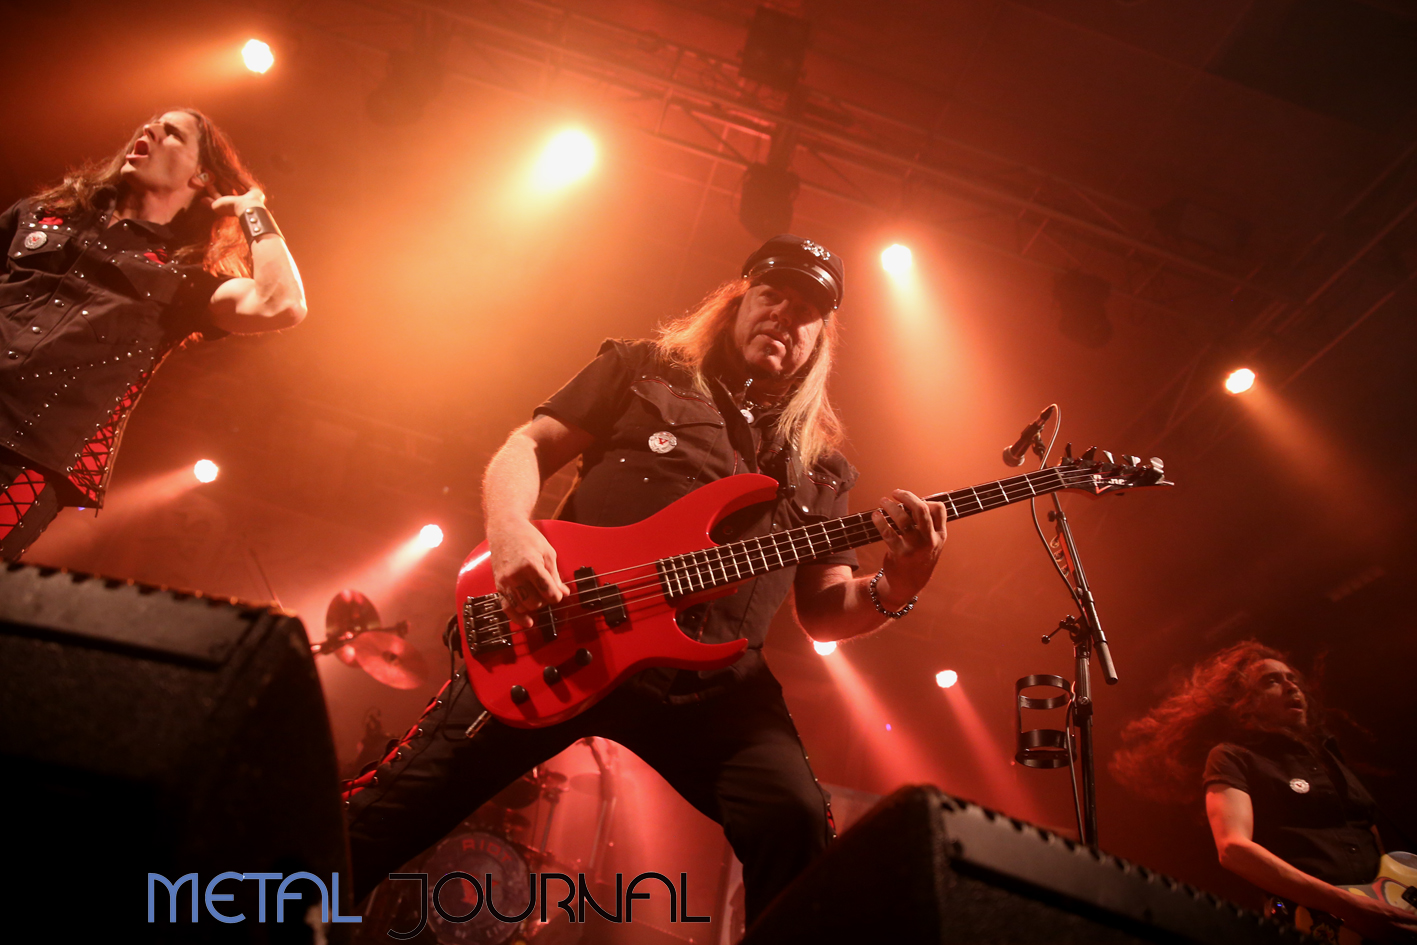 riot v - metal journal bilbao 2018 pic 3